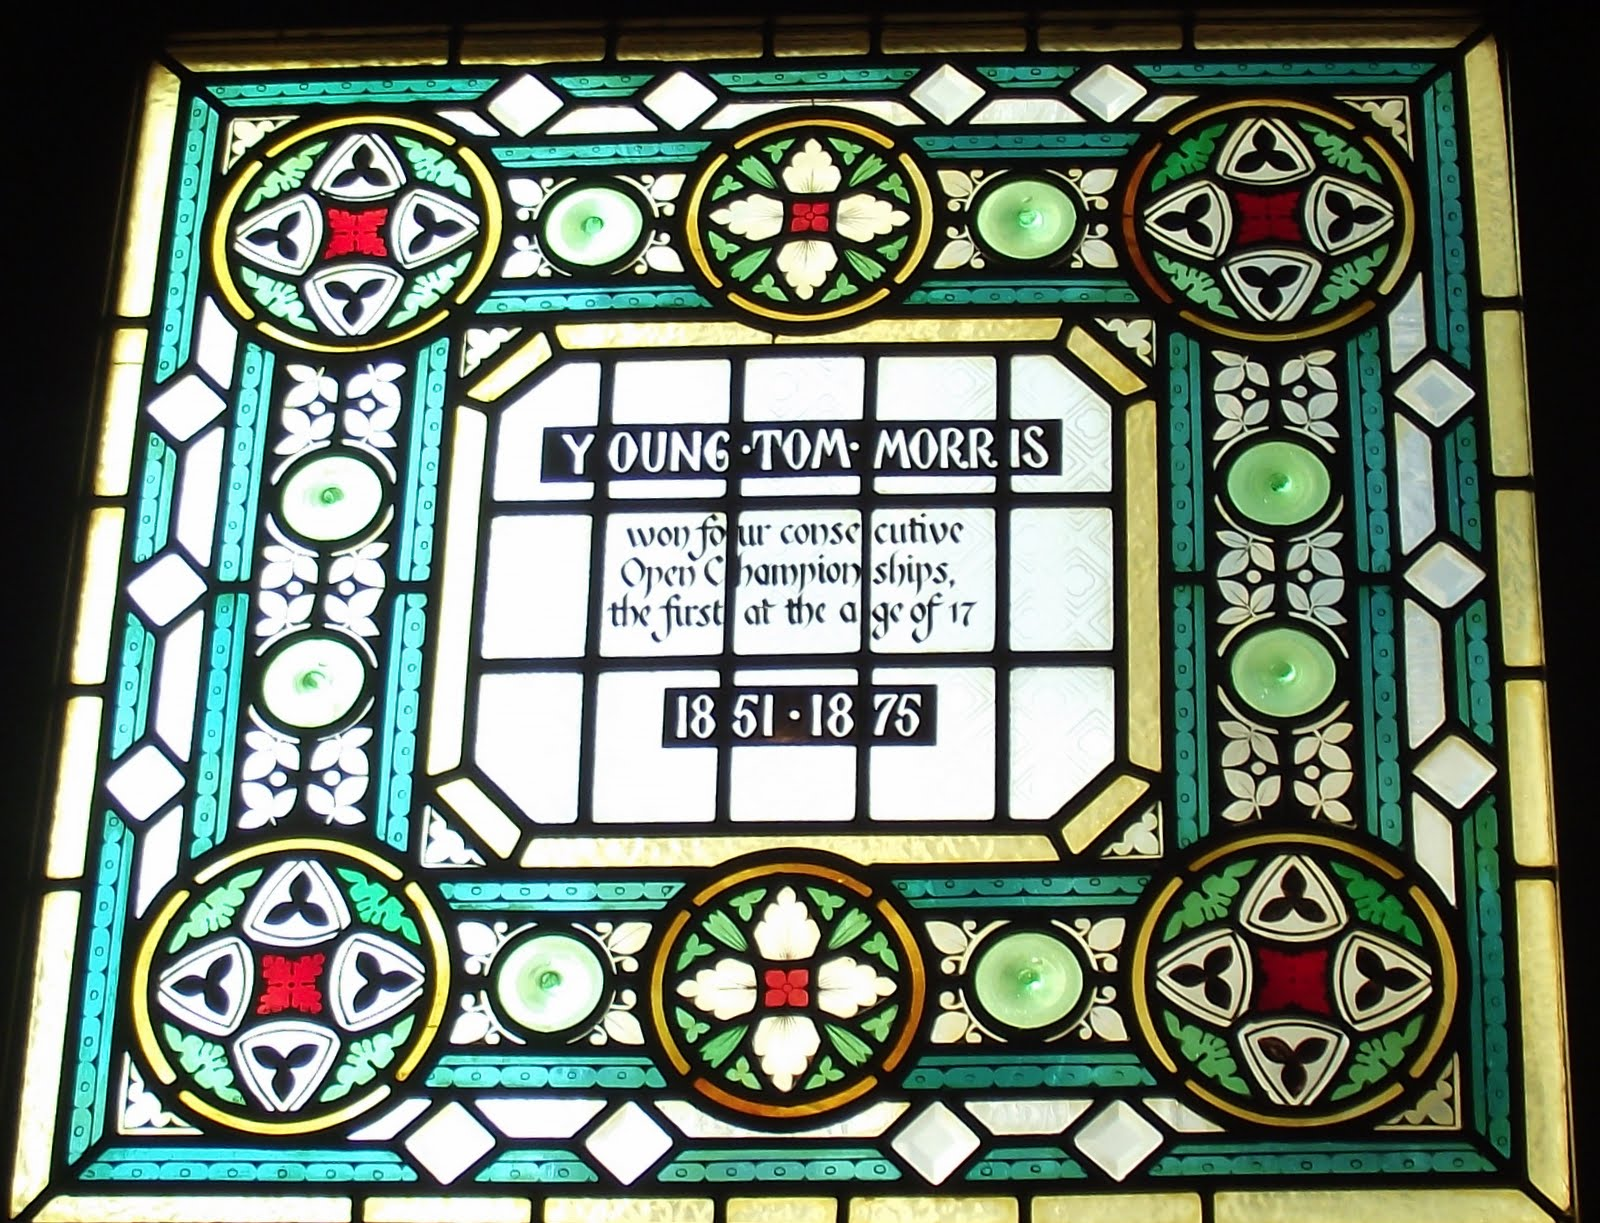 Young Tom Morris stained glass at the Champion pub